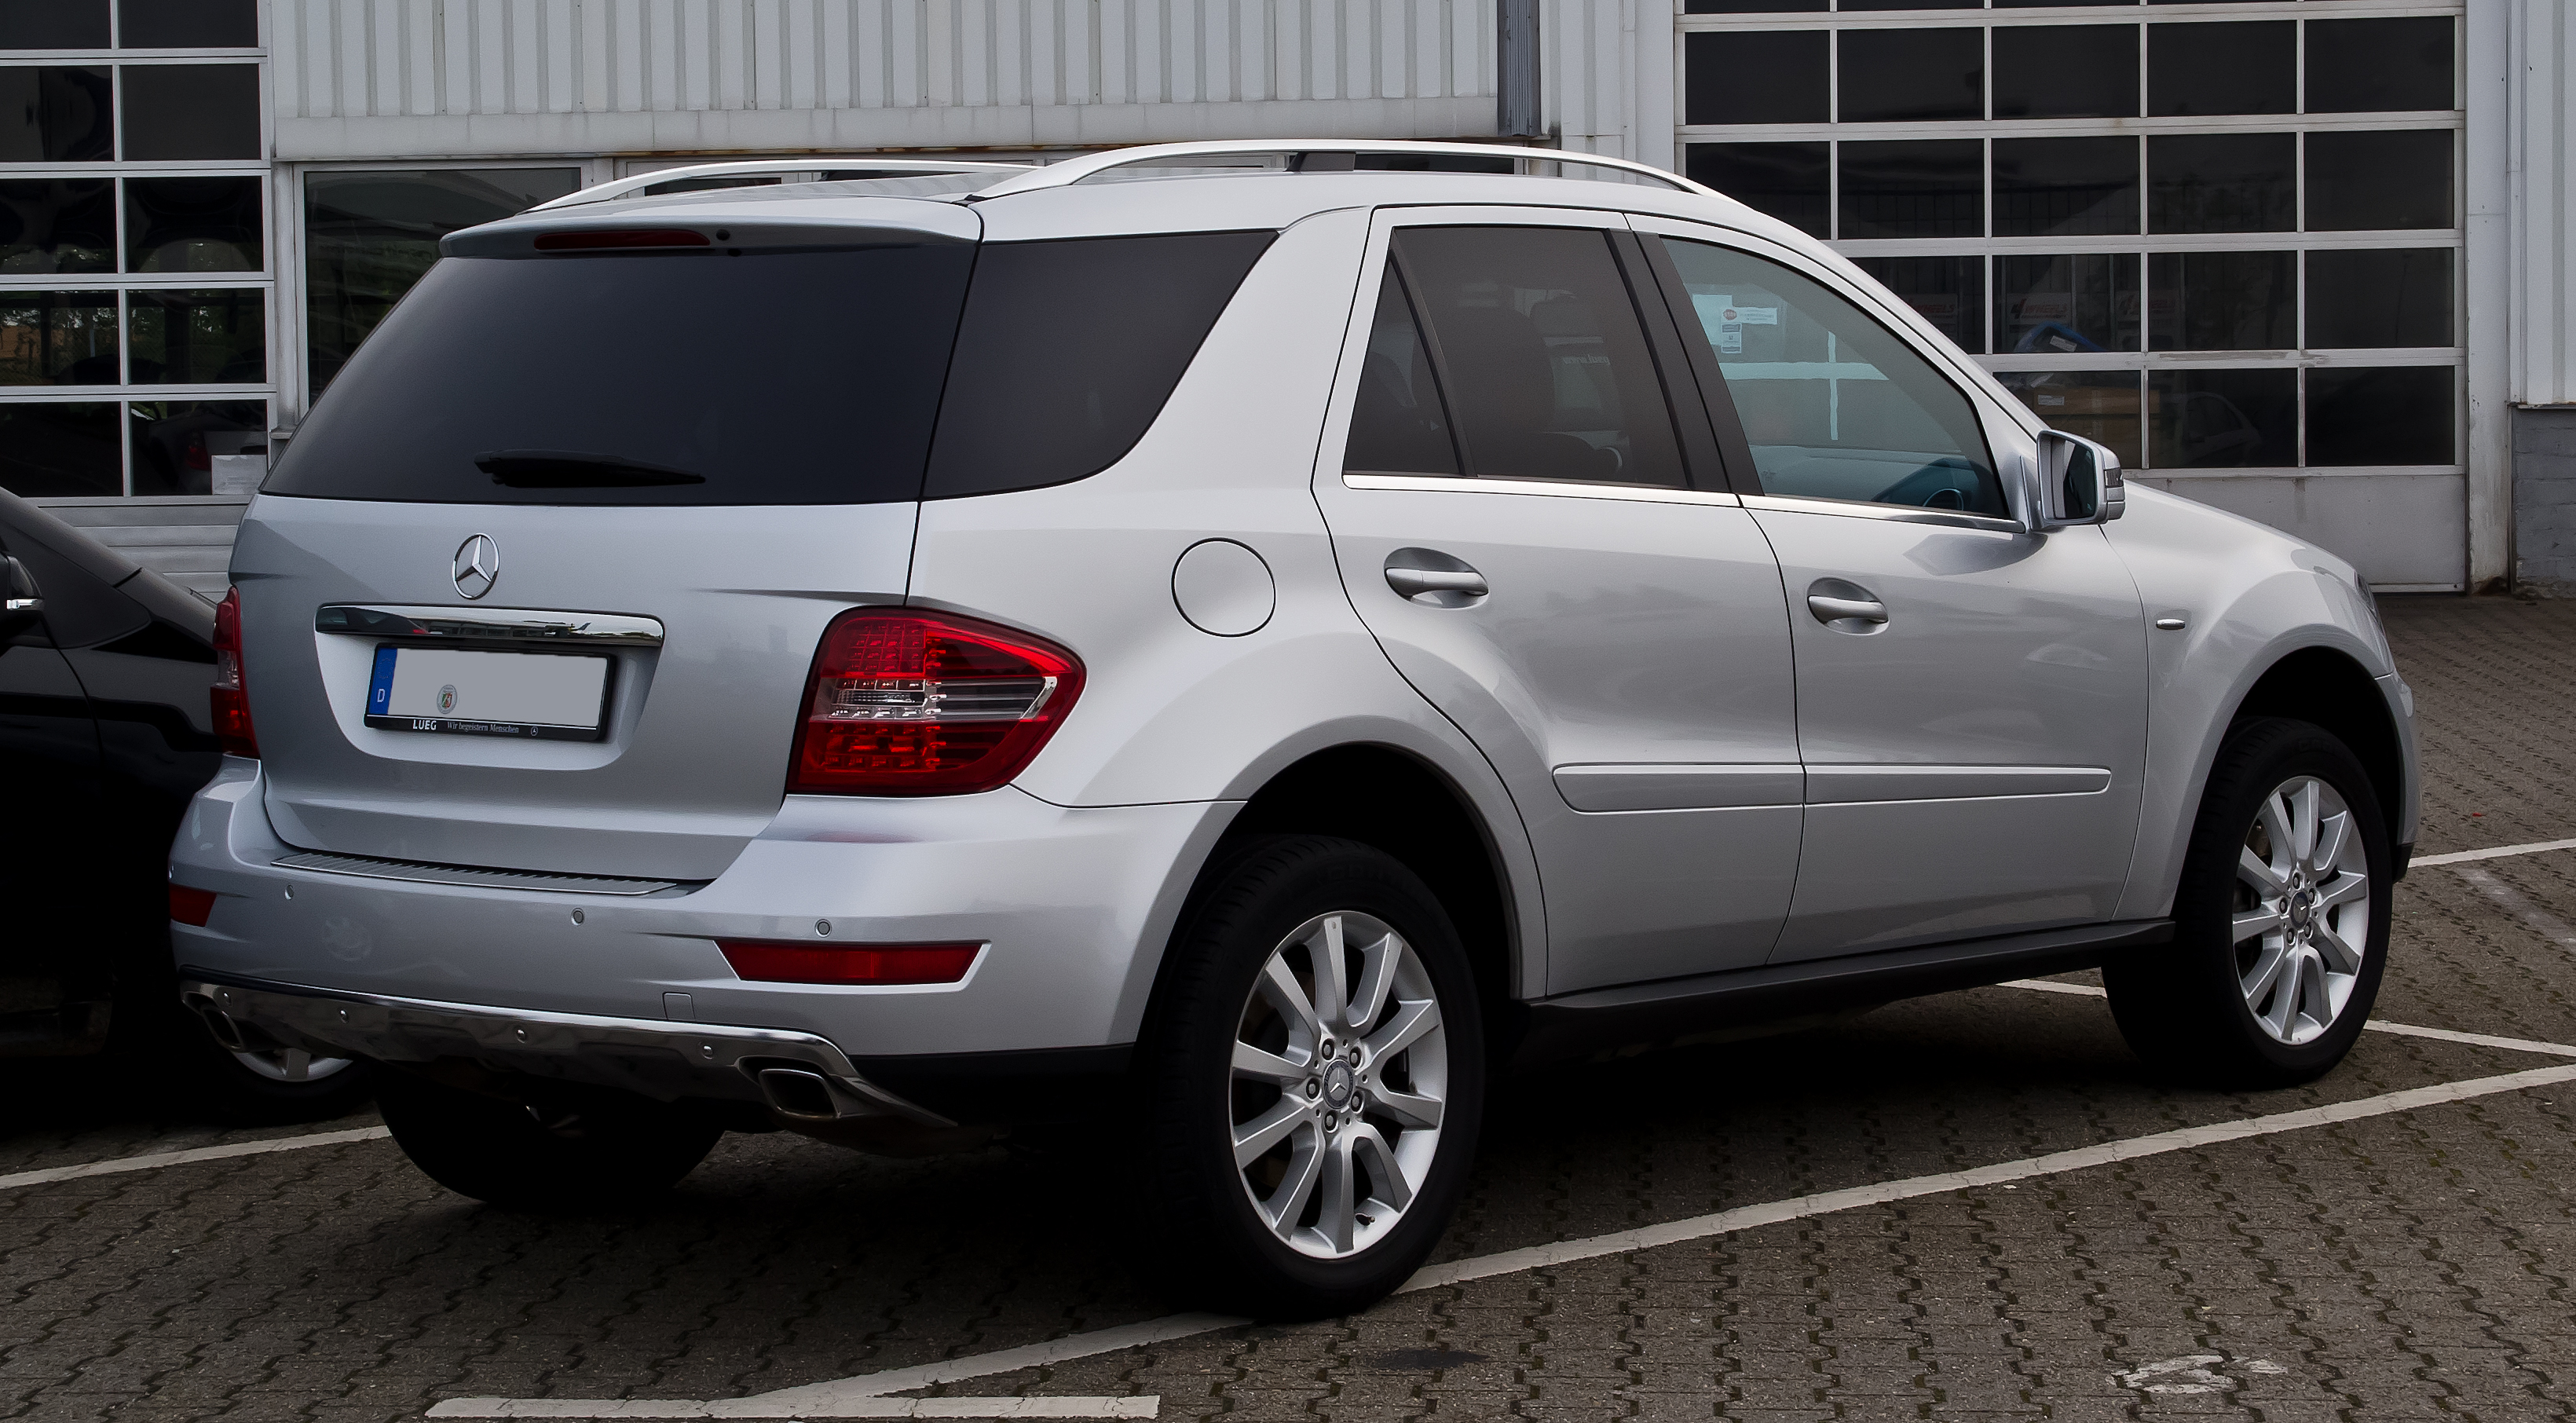 Ml 350 cdi 2015 facelift release date price and specs for Mercedes benz ml class 350 cdi price in india